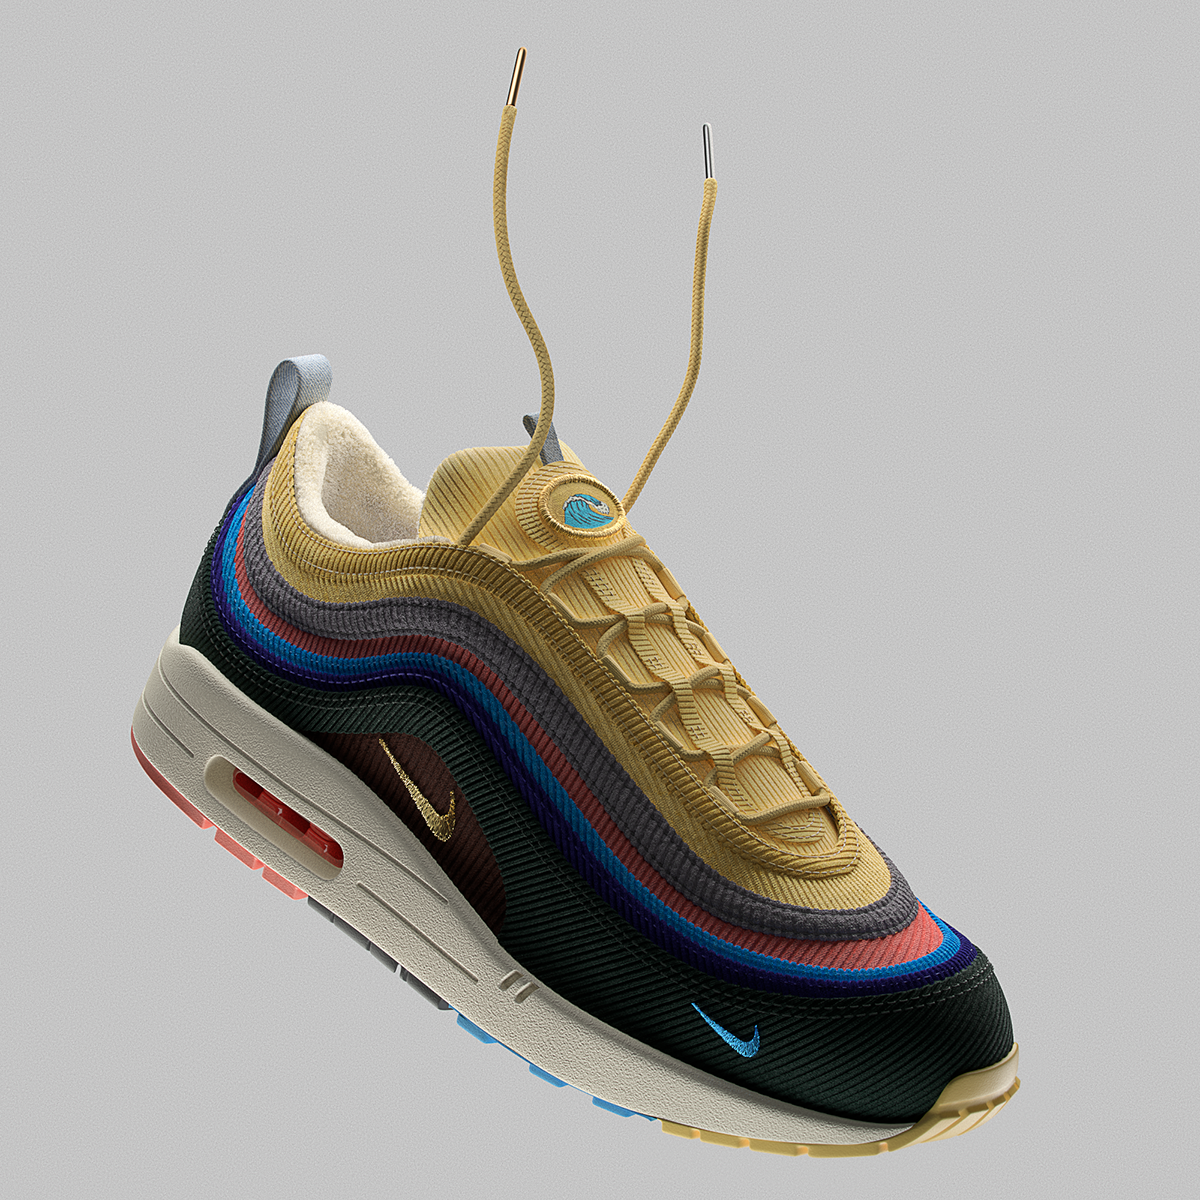 Nike Air Max 1/97 Sean Wotherspoon 3D on Behance